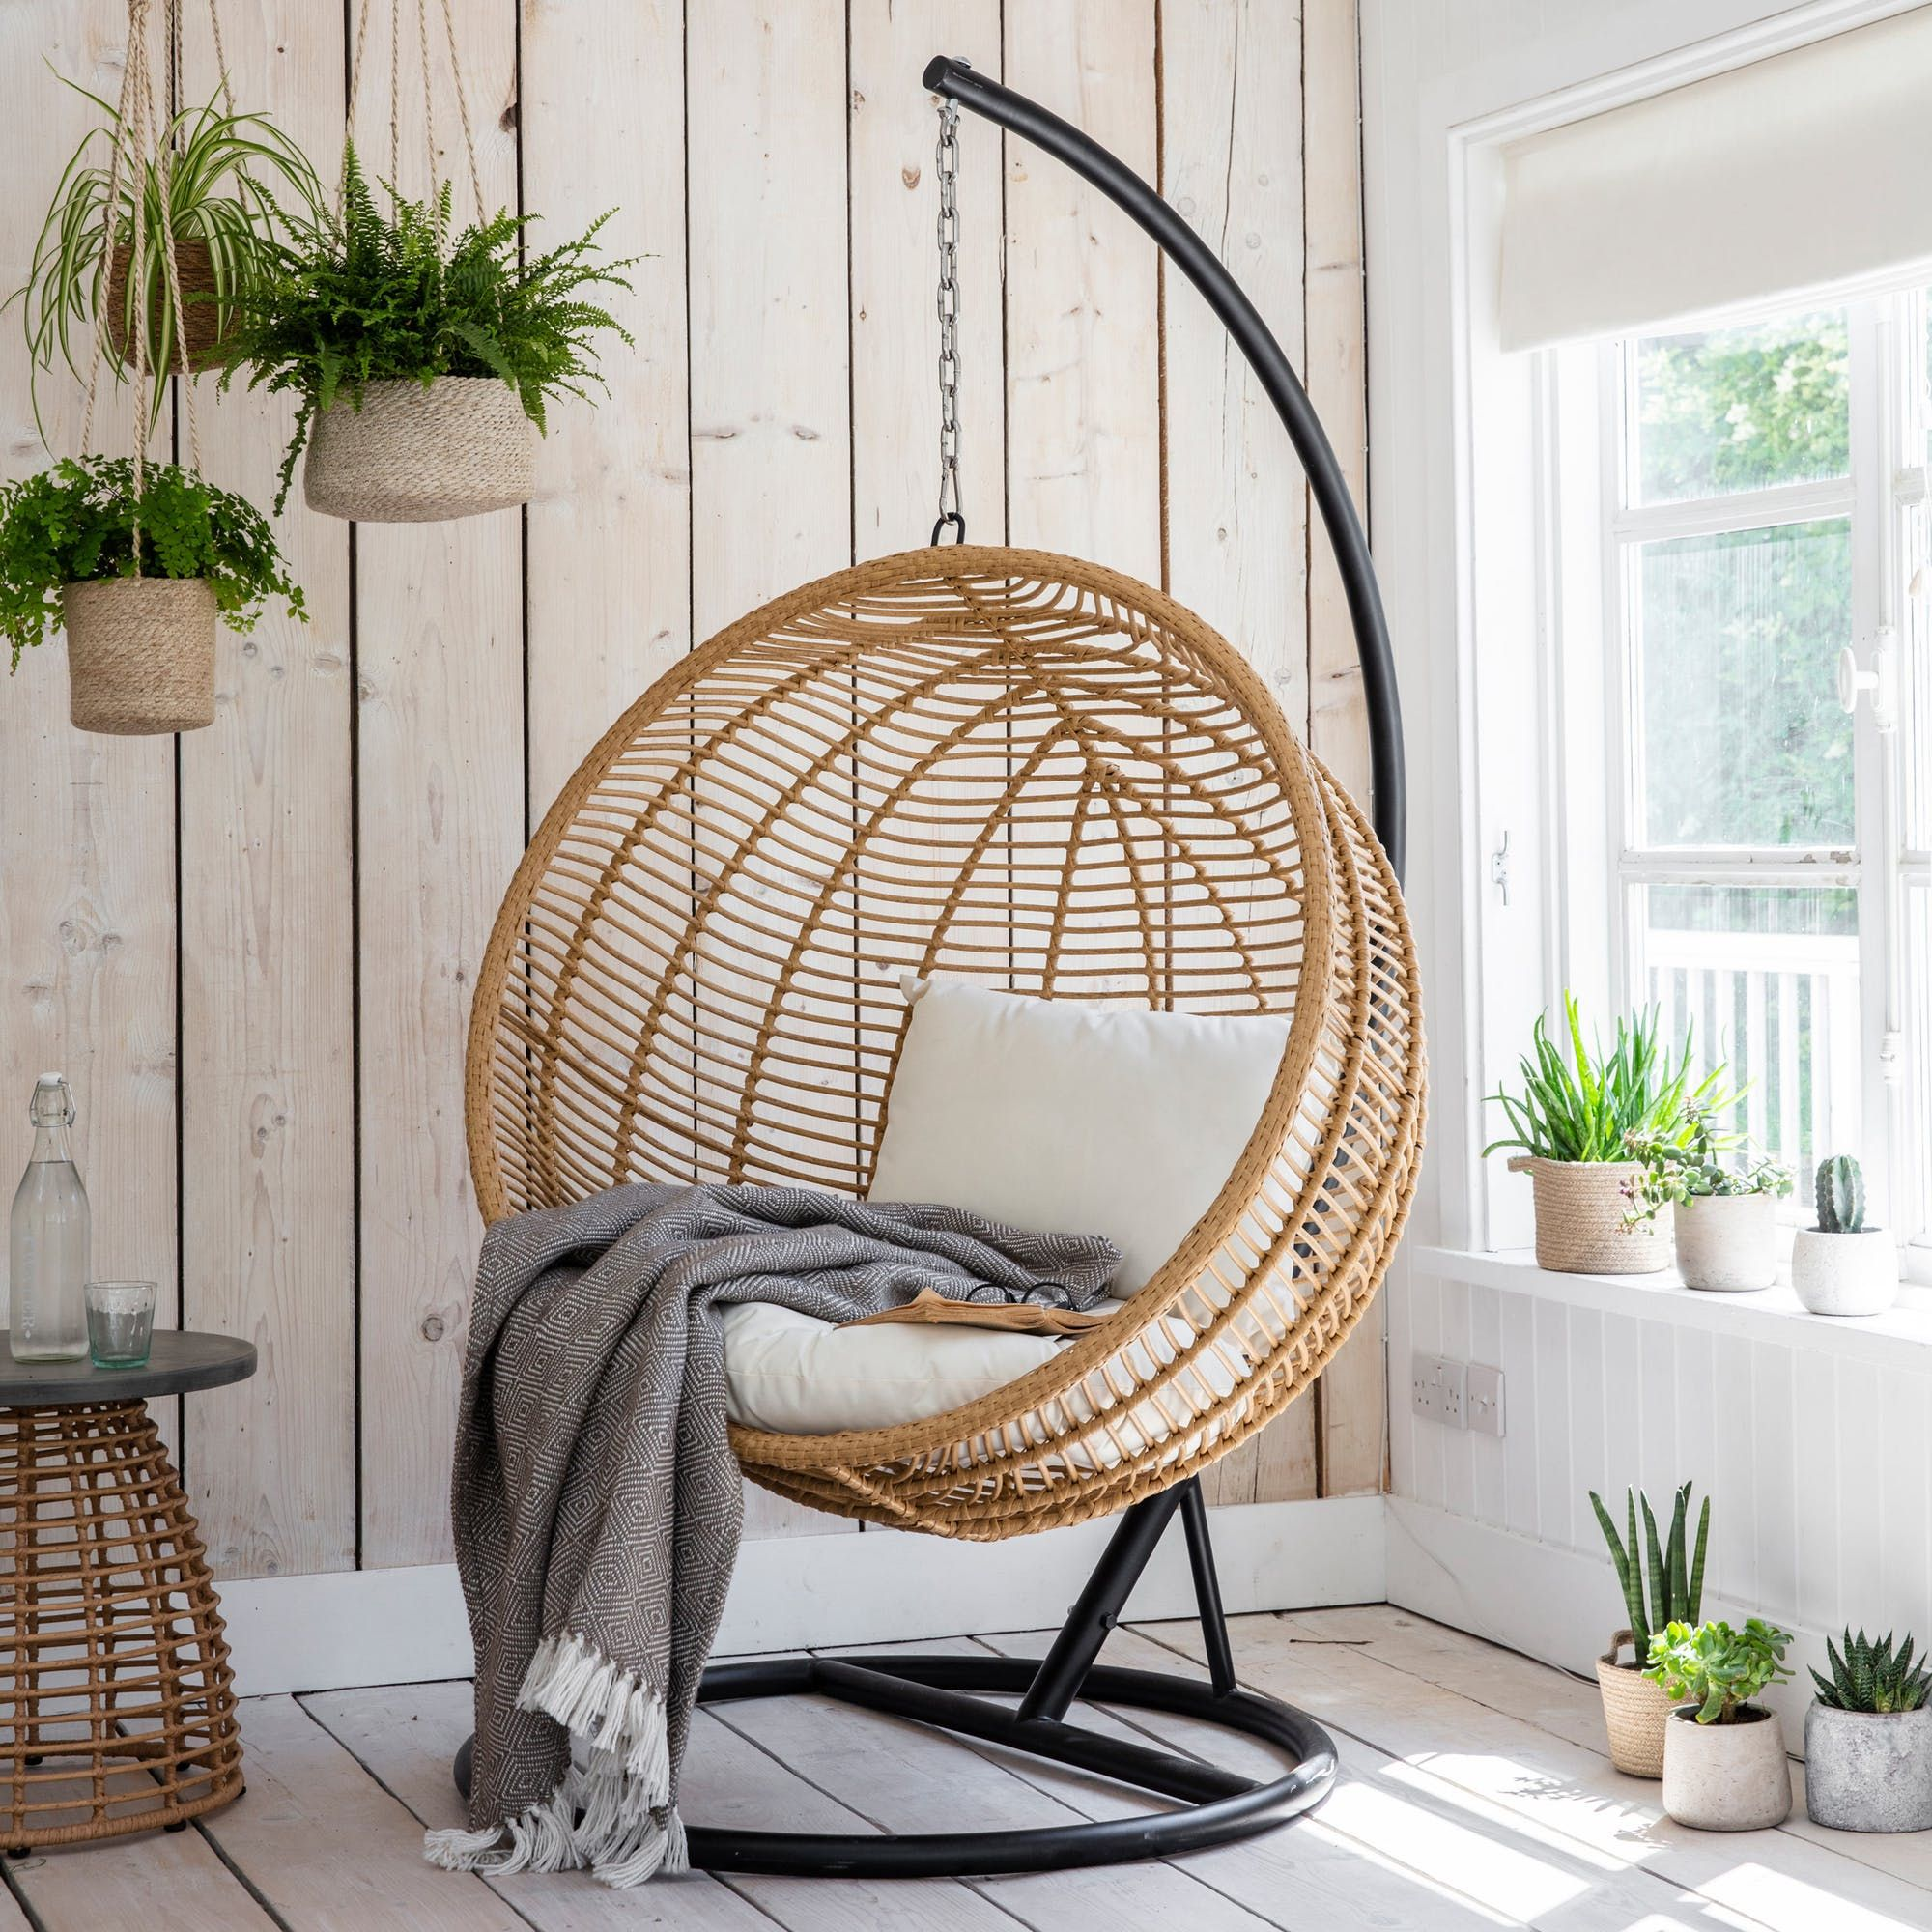 Furniture Trends 2019 Swing Chairs in 2020 Nest chair